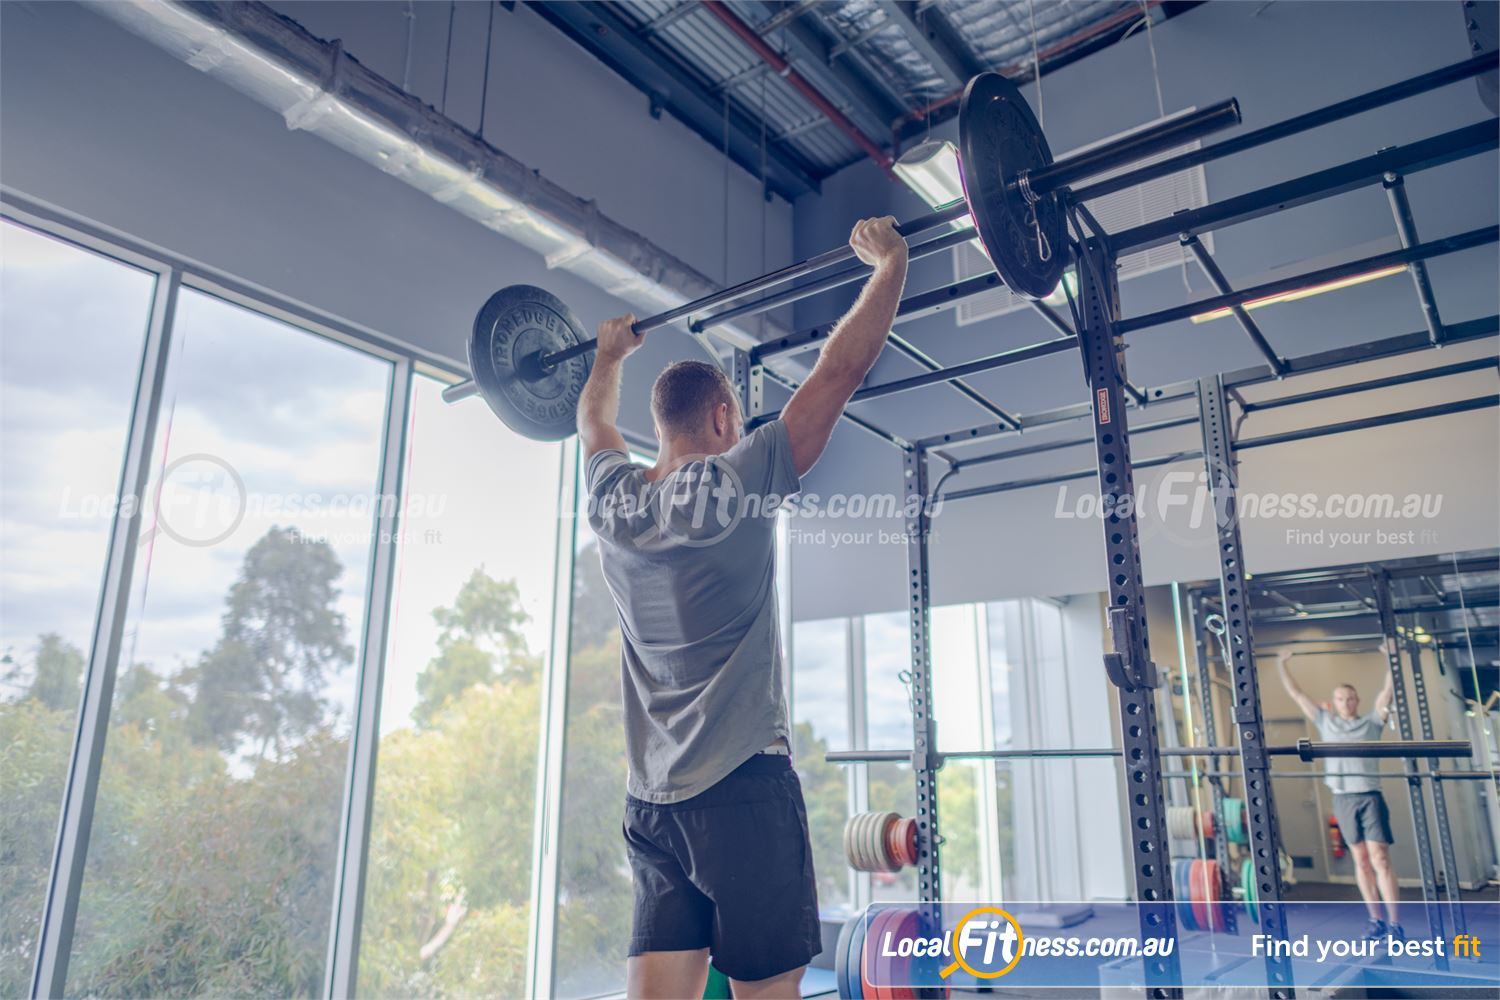 Element Fitness Health Club Near Mitcham Our strength matrix is prefect for presses, deadlifts, squats and more.